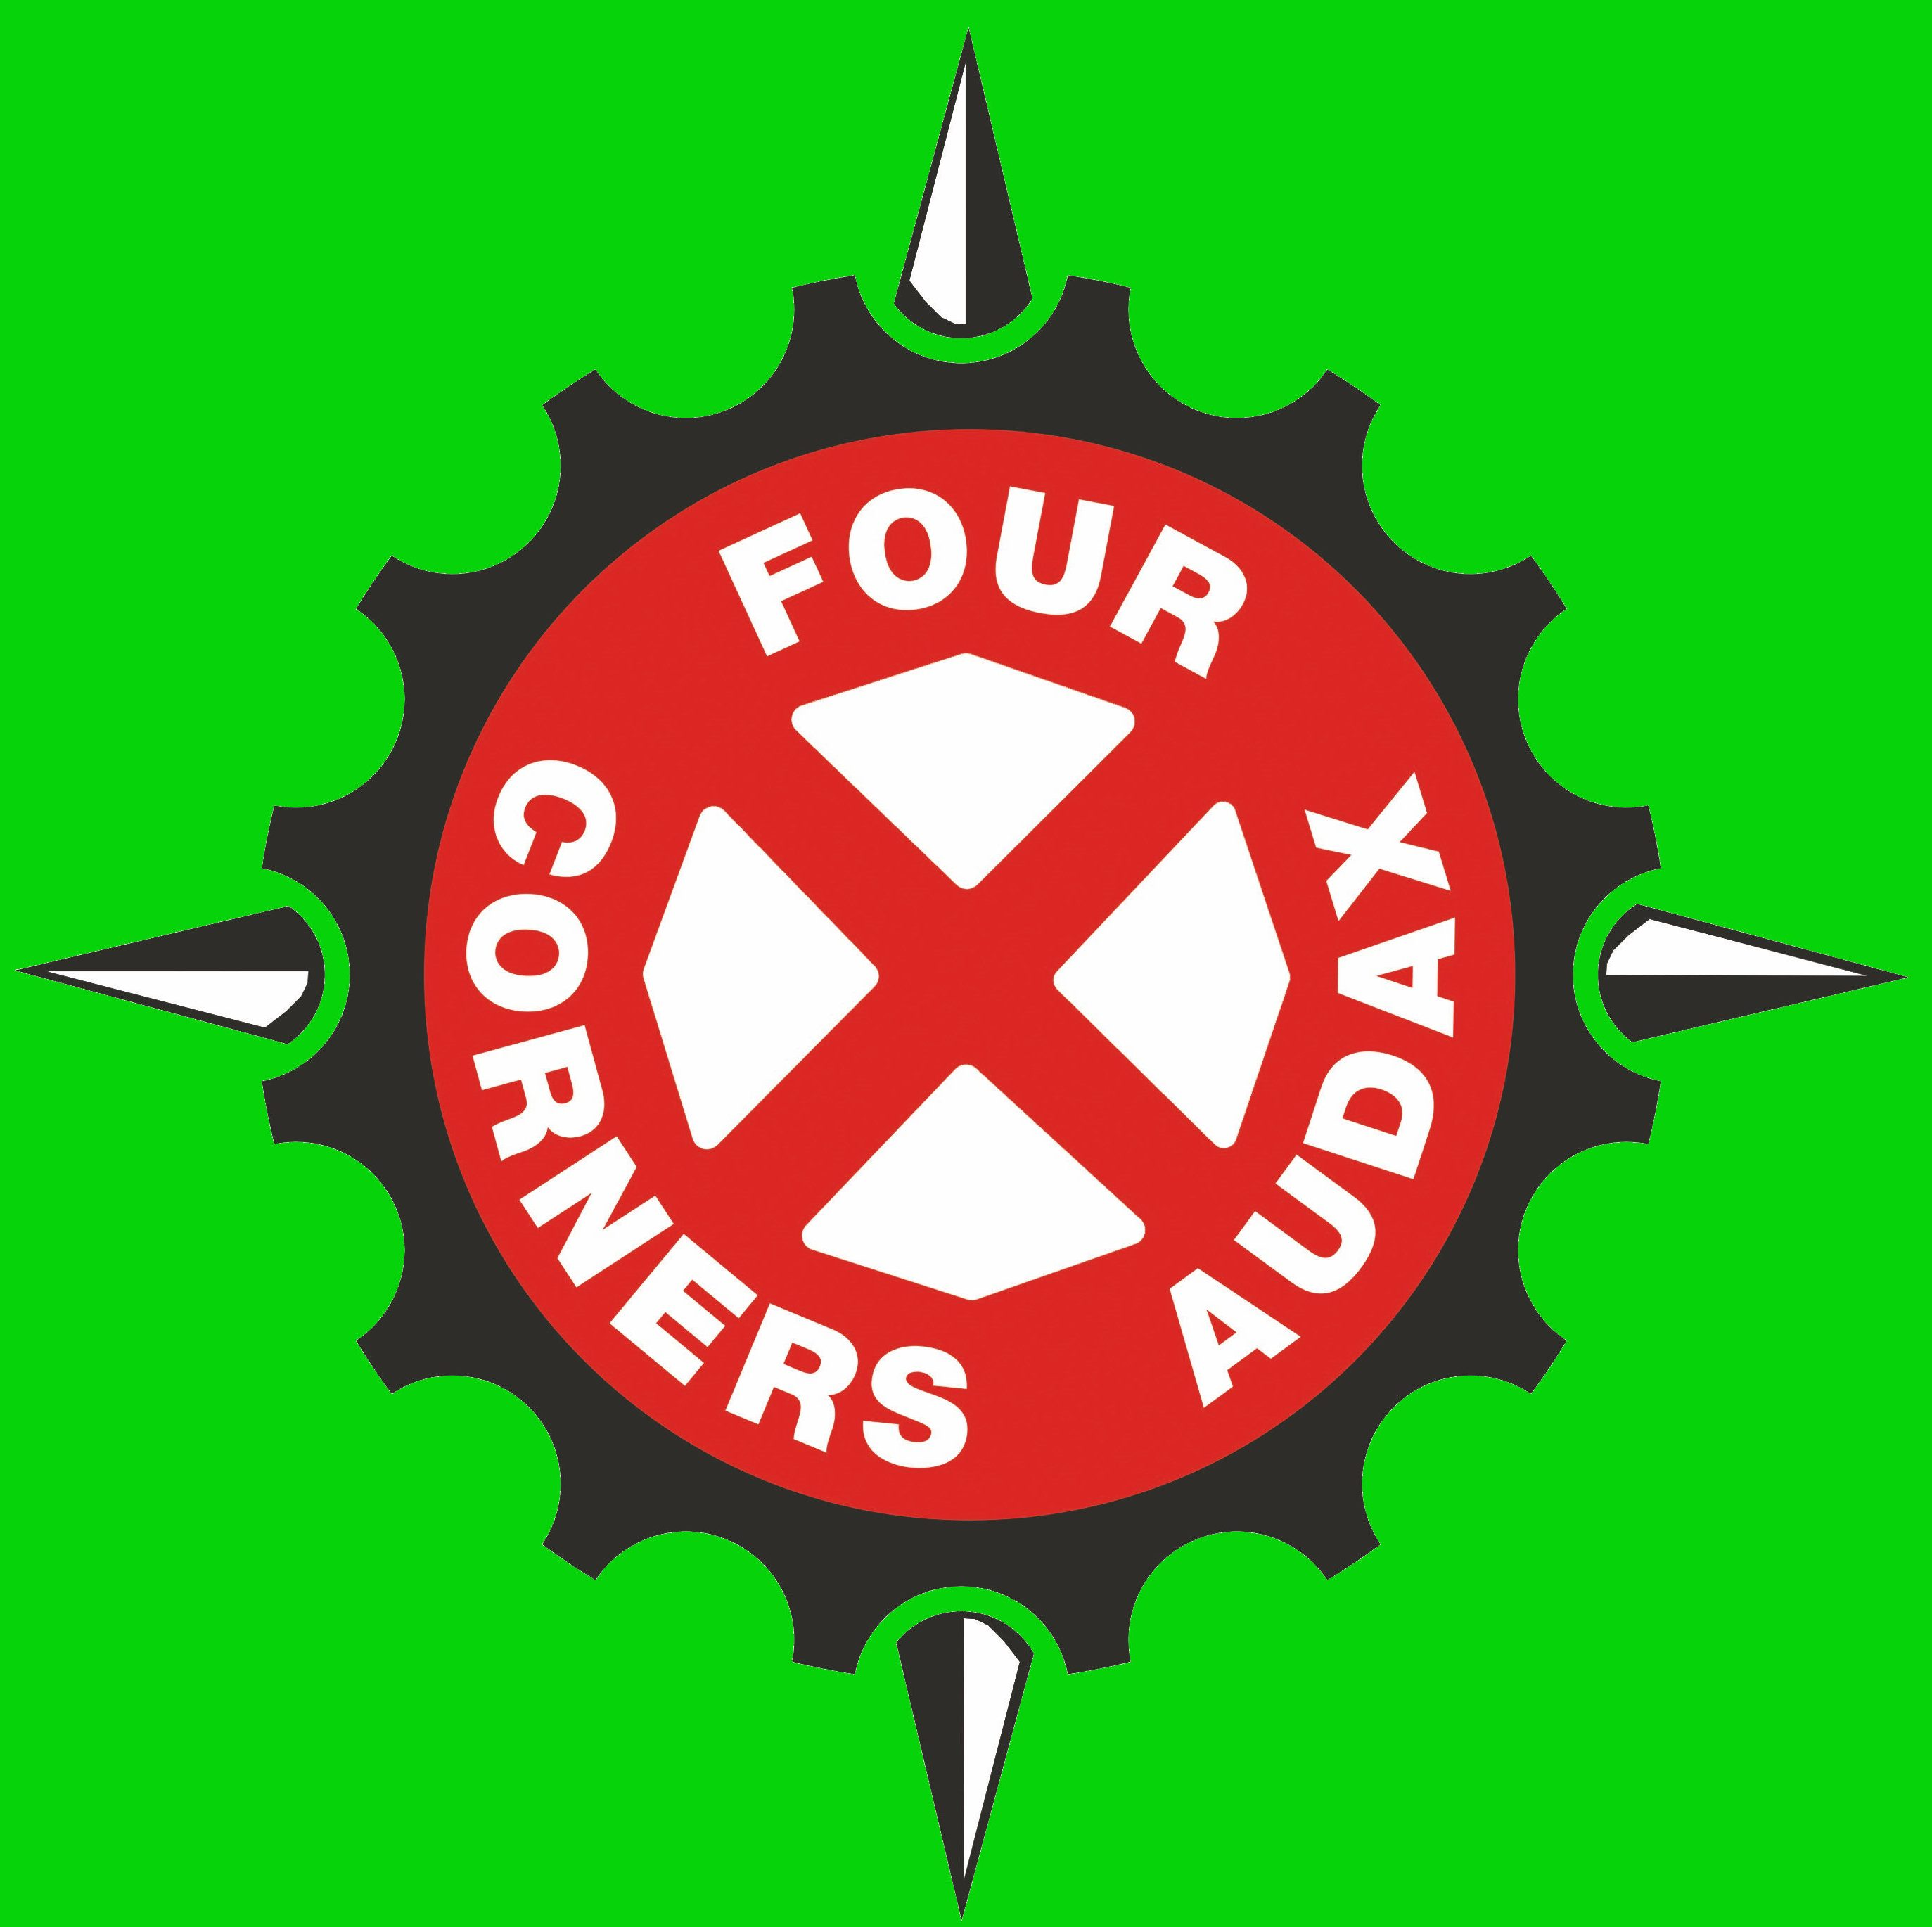 Four Corners Audax